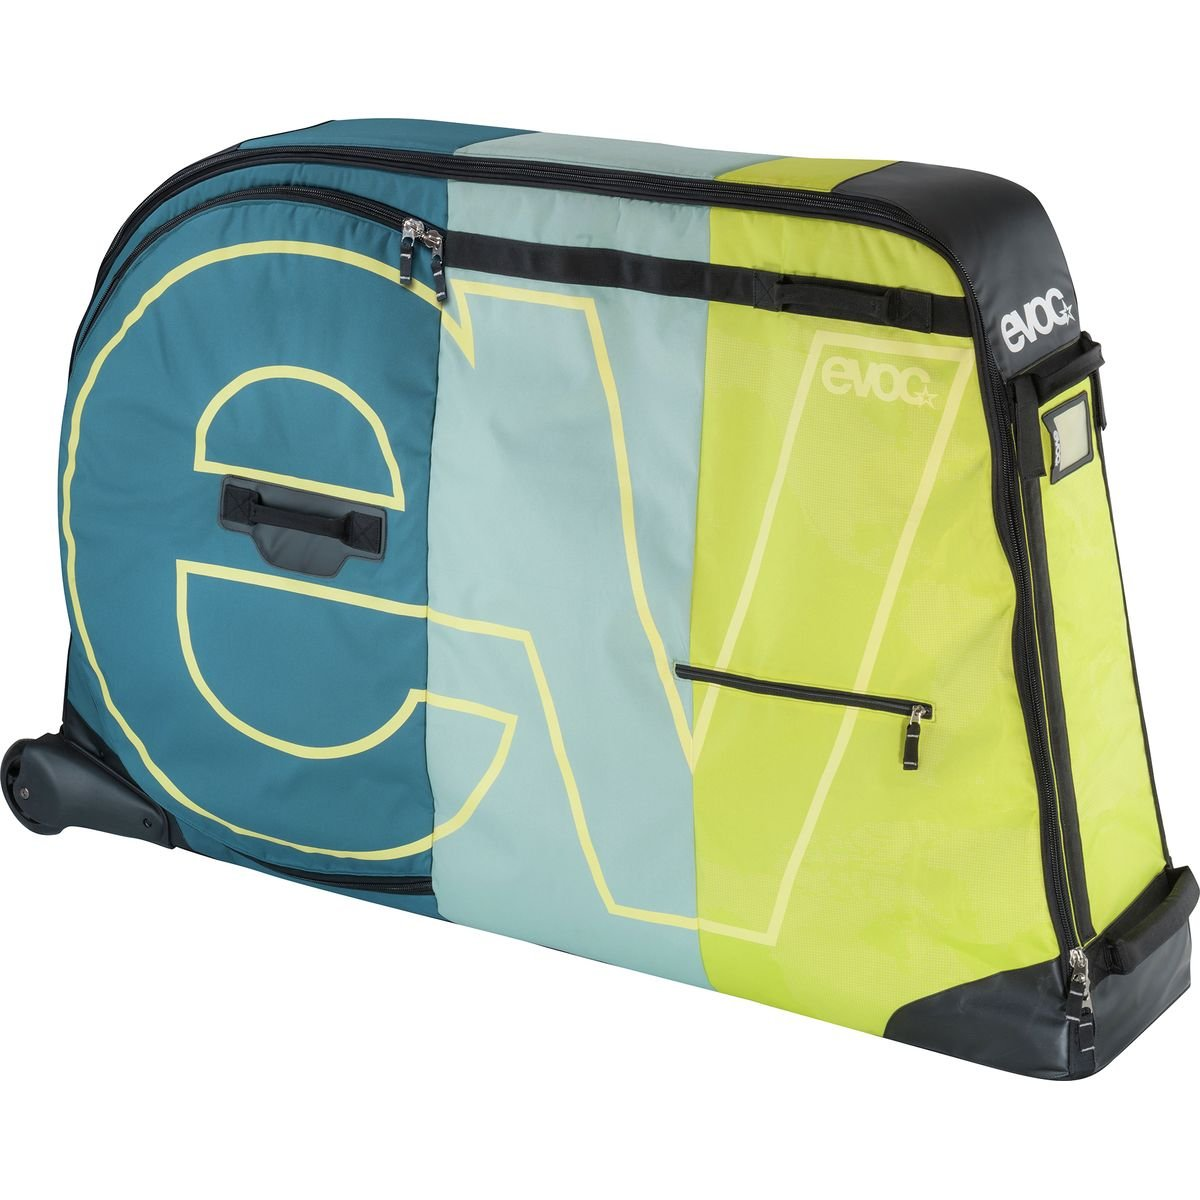 Evoc 2016 Bike Travel Transport Bag